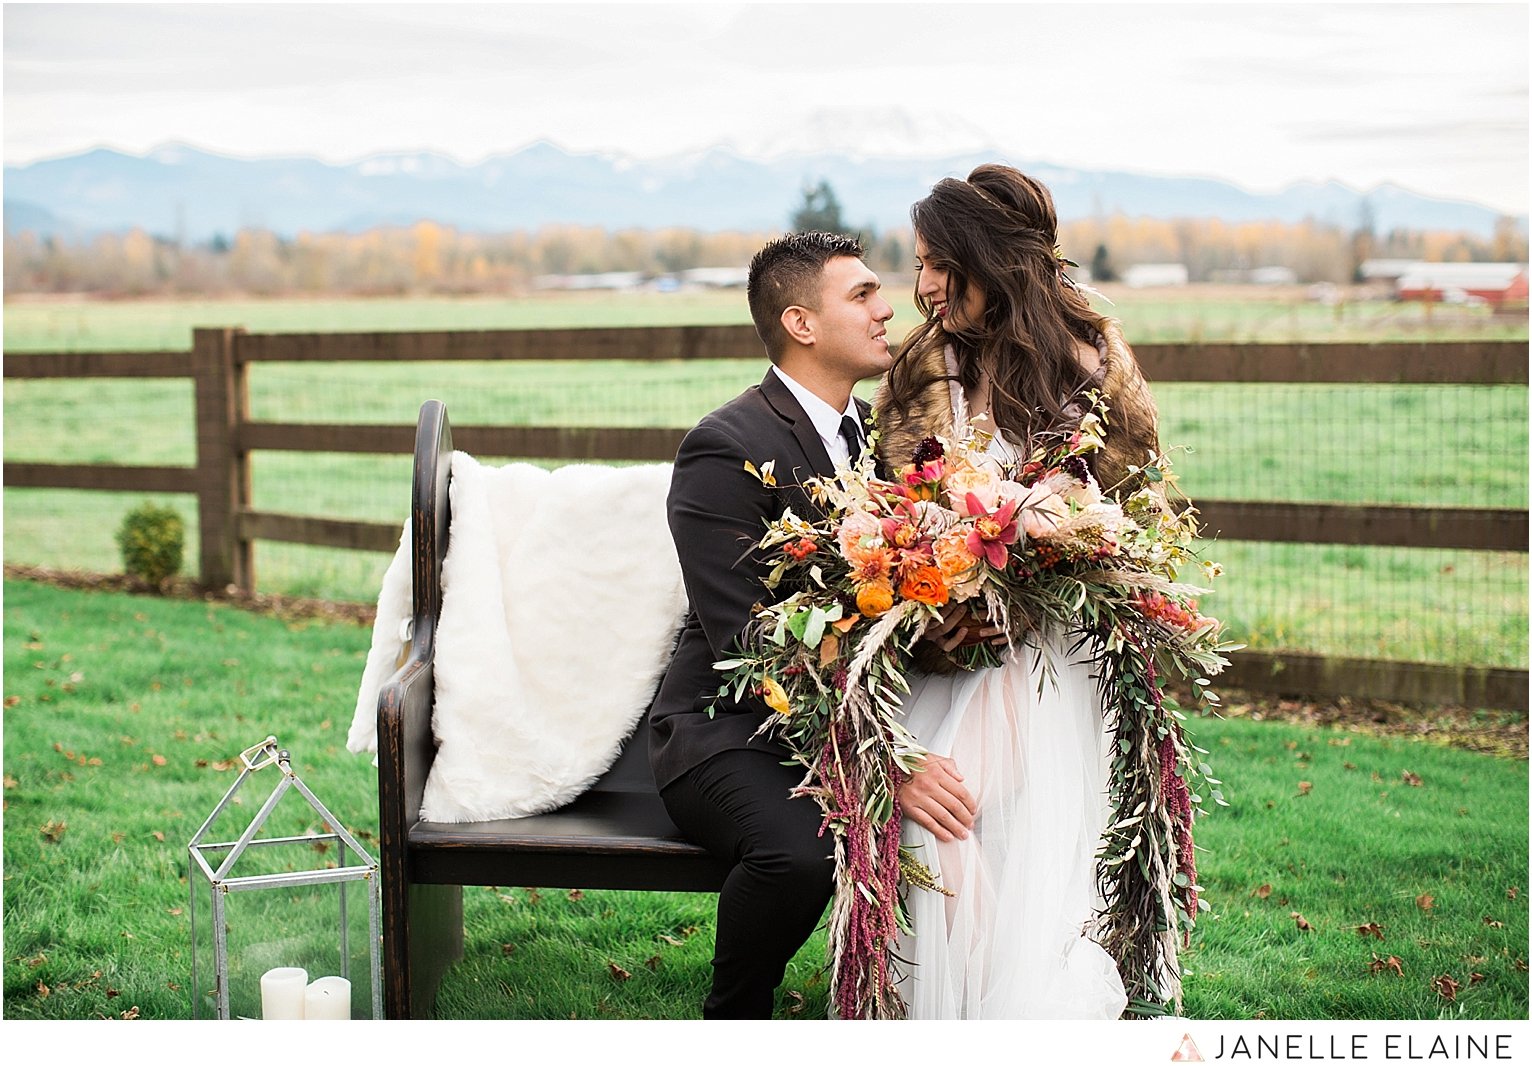 mount-rainier-elopement-enumclaw-washington-wedding-photography-mountain view manor-couture blossoms-wild hearted beauty-103.jpg